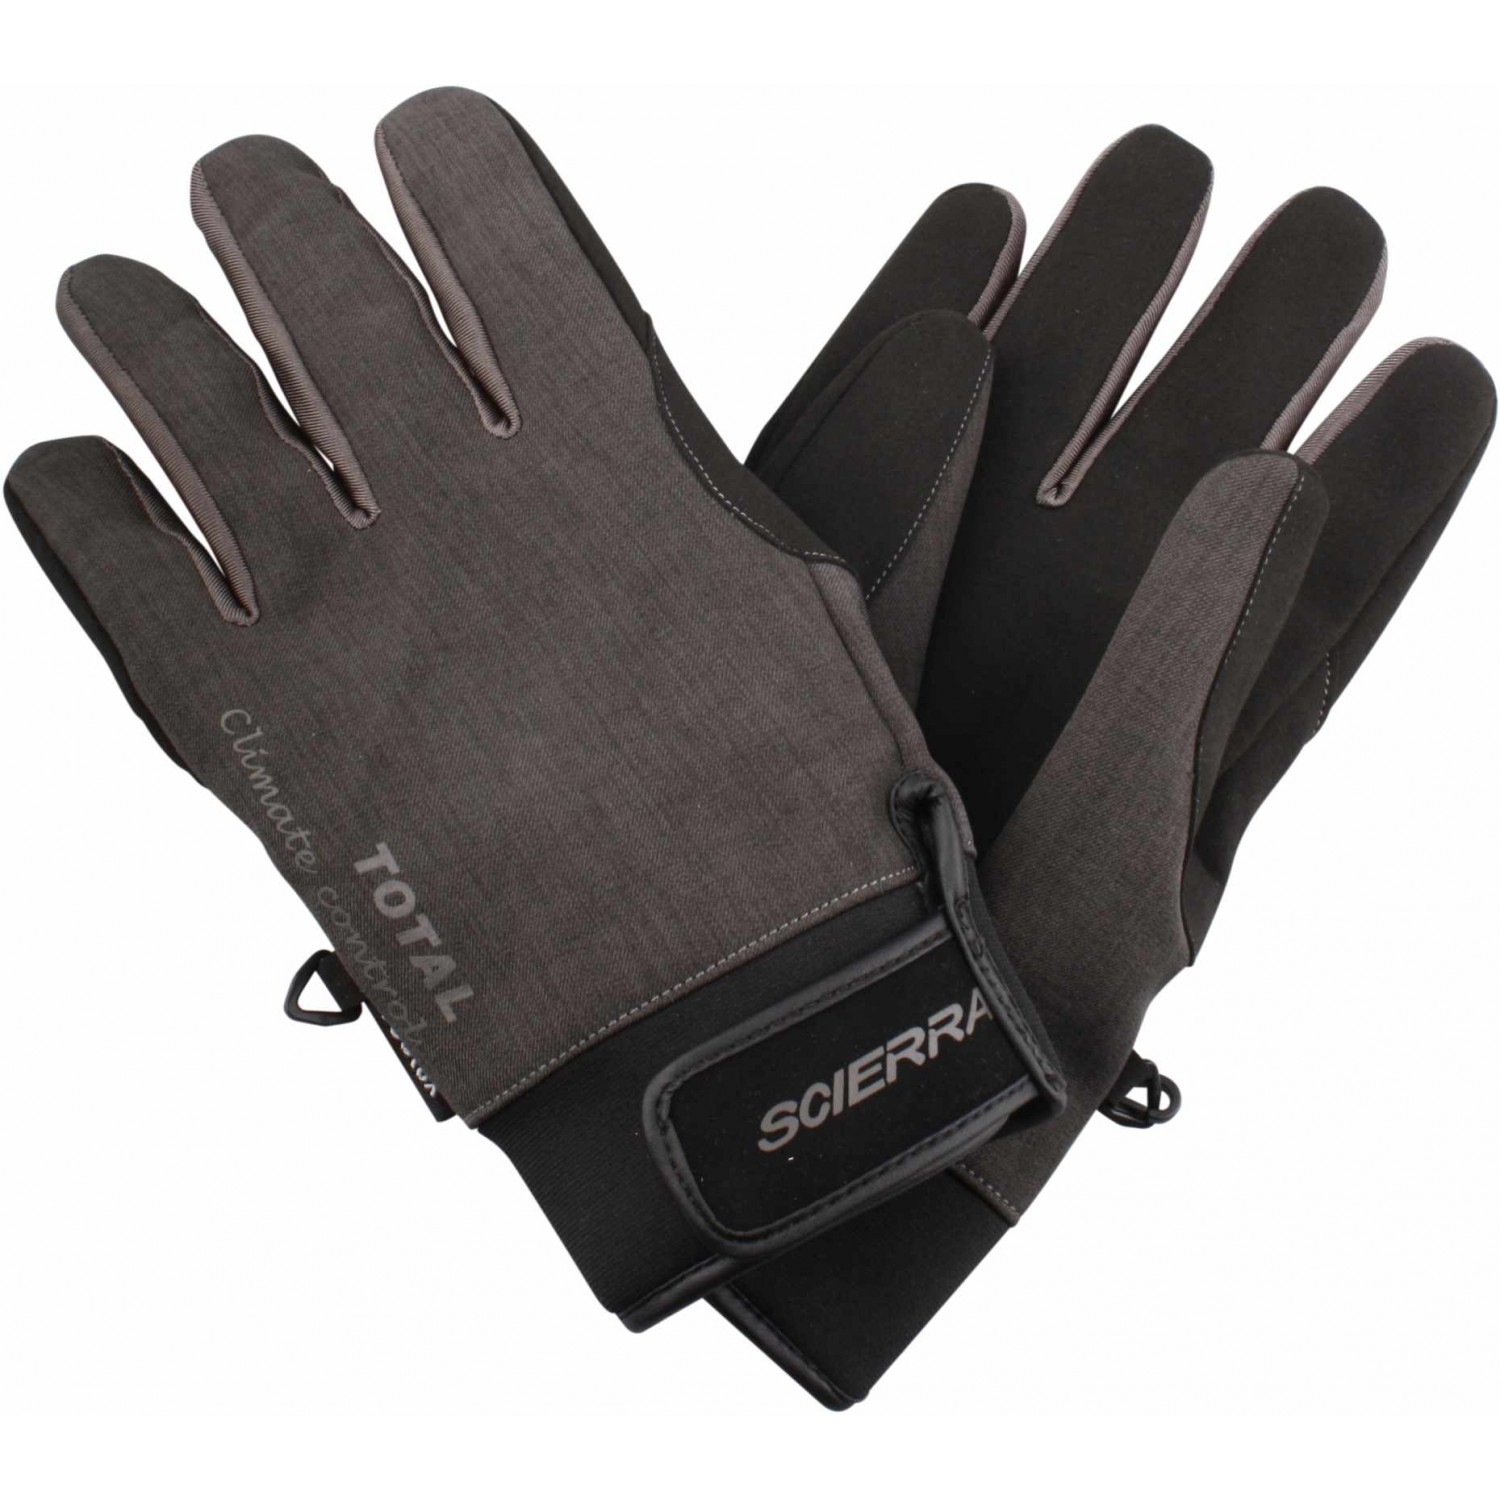 Scierra Sensi Dry Glove Grey